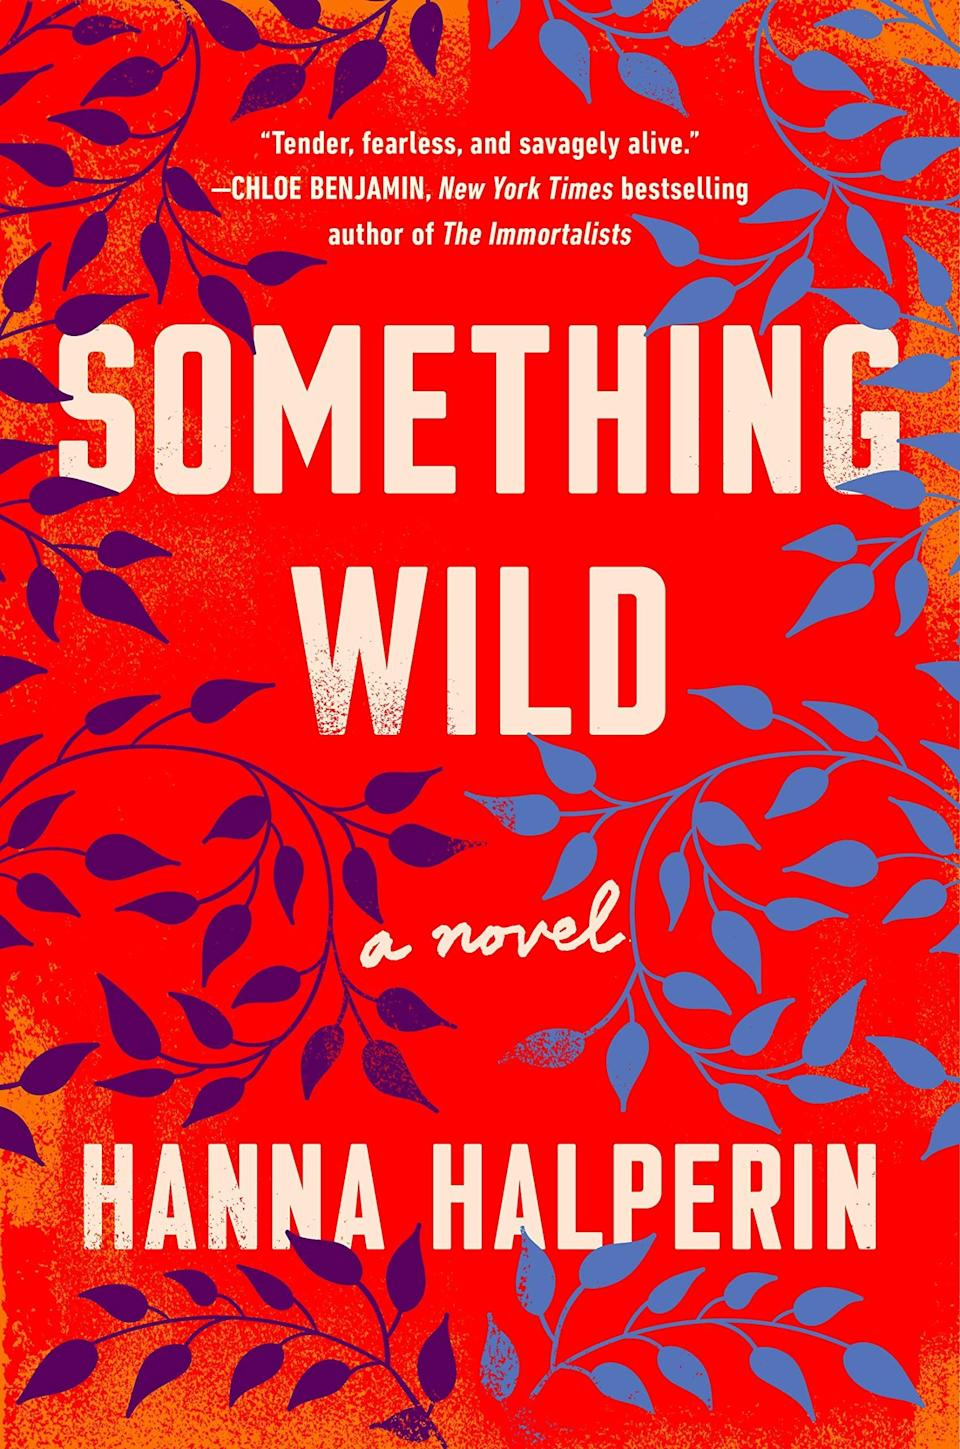 <p><span><strong>Something Wild</strong></span> by Hanna Halperin is a story of sisters and mothers, and the secrets they keep. When they return home to help their mother move, Tanya and Nessa discover their mom is in an abusive relationship. As they try to convince their mother to leave, each woman will be forced to confront memories they would rather forget. </p> <p><em>Out June 29</em></p>